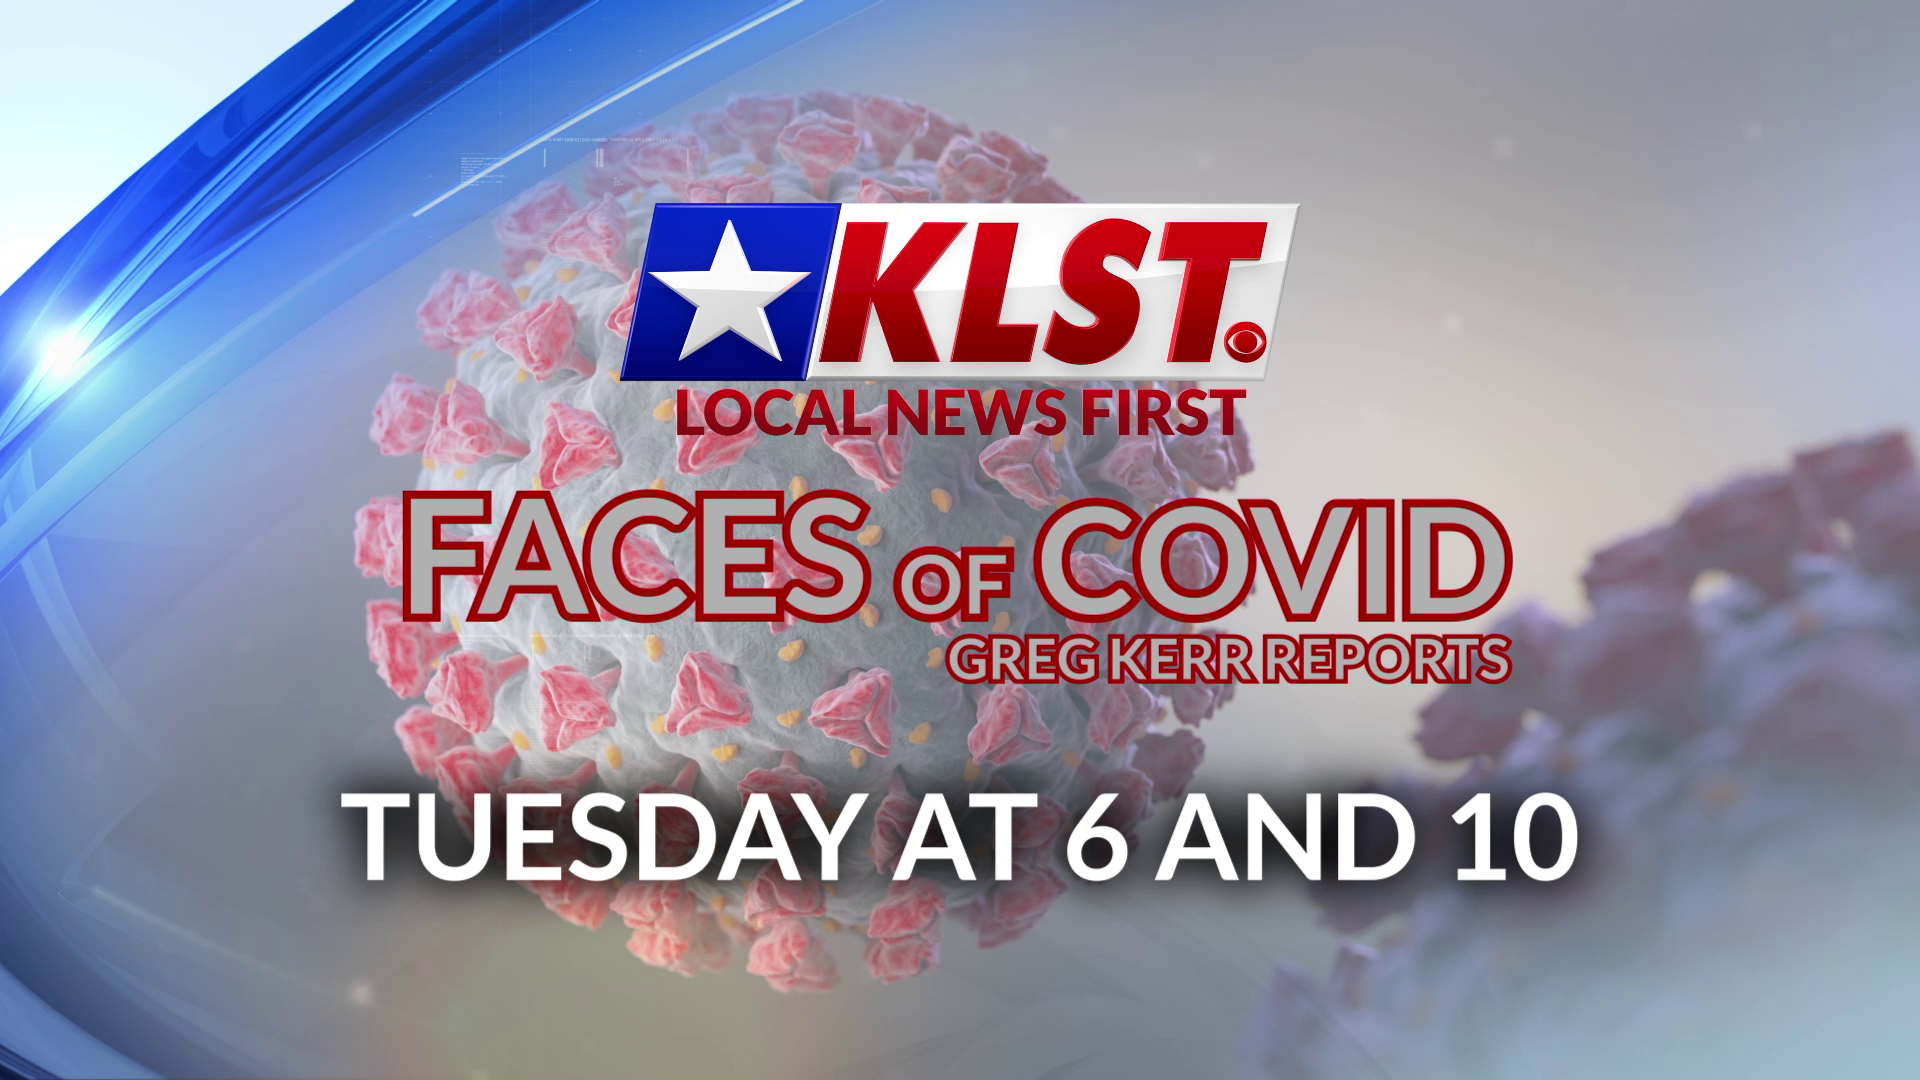 KLST Faces of Covid